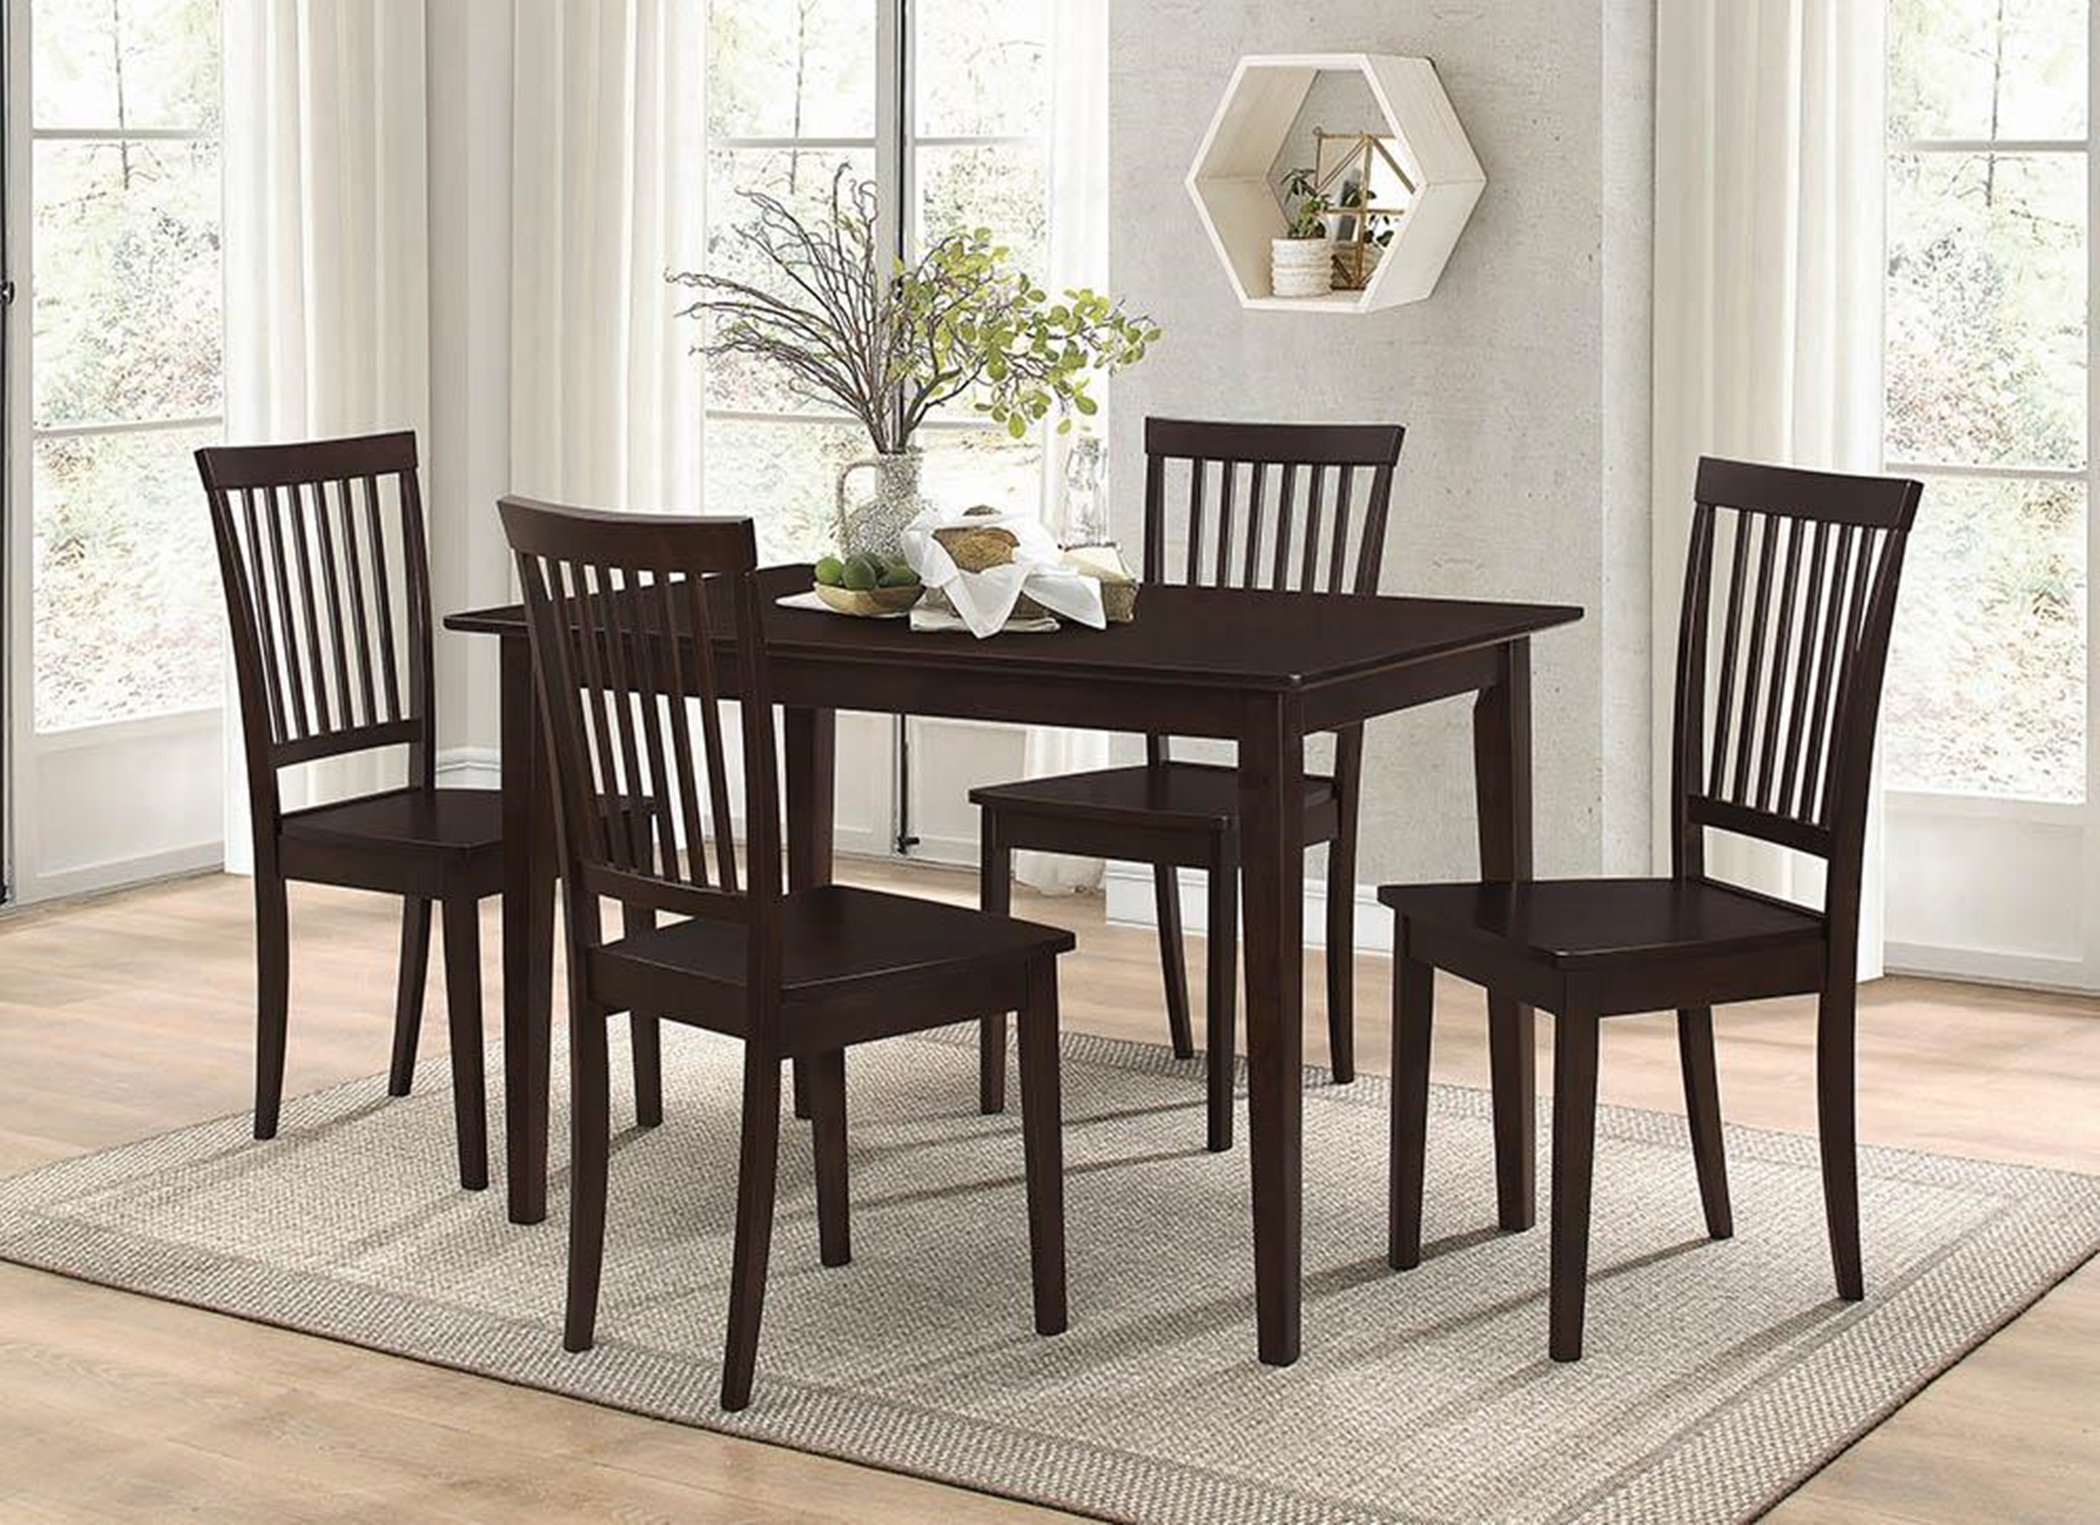 Oakdale Casual Capp. 5-Pc. Dinette Set